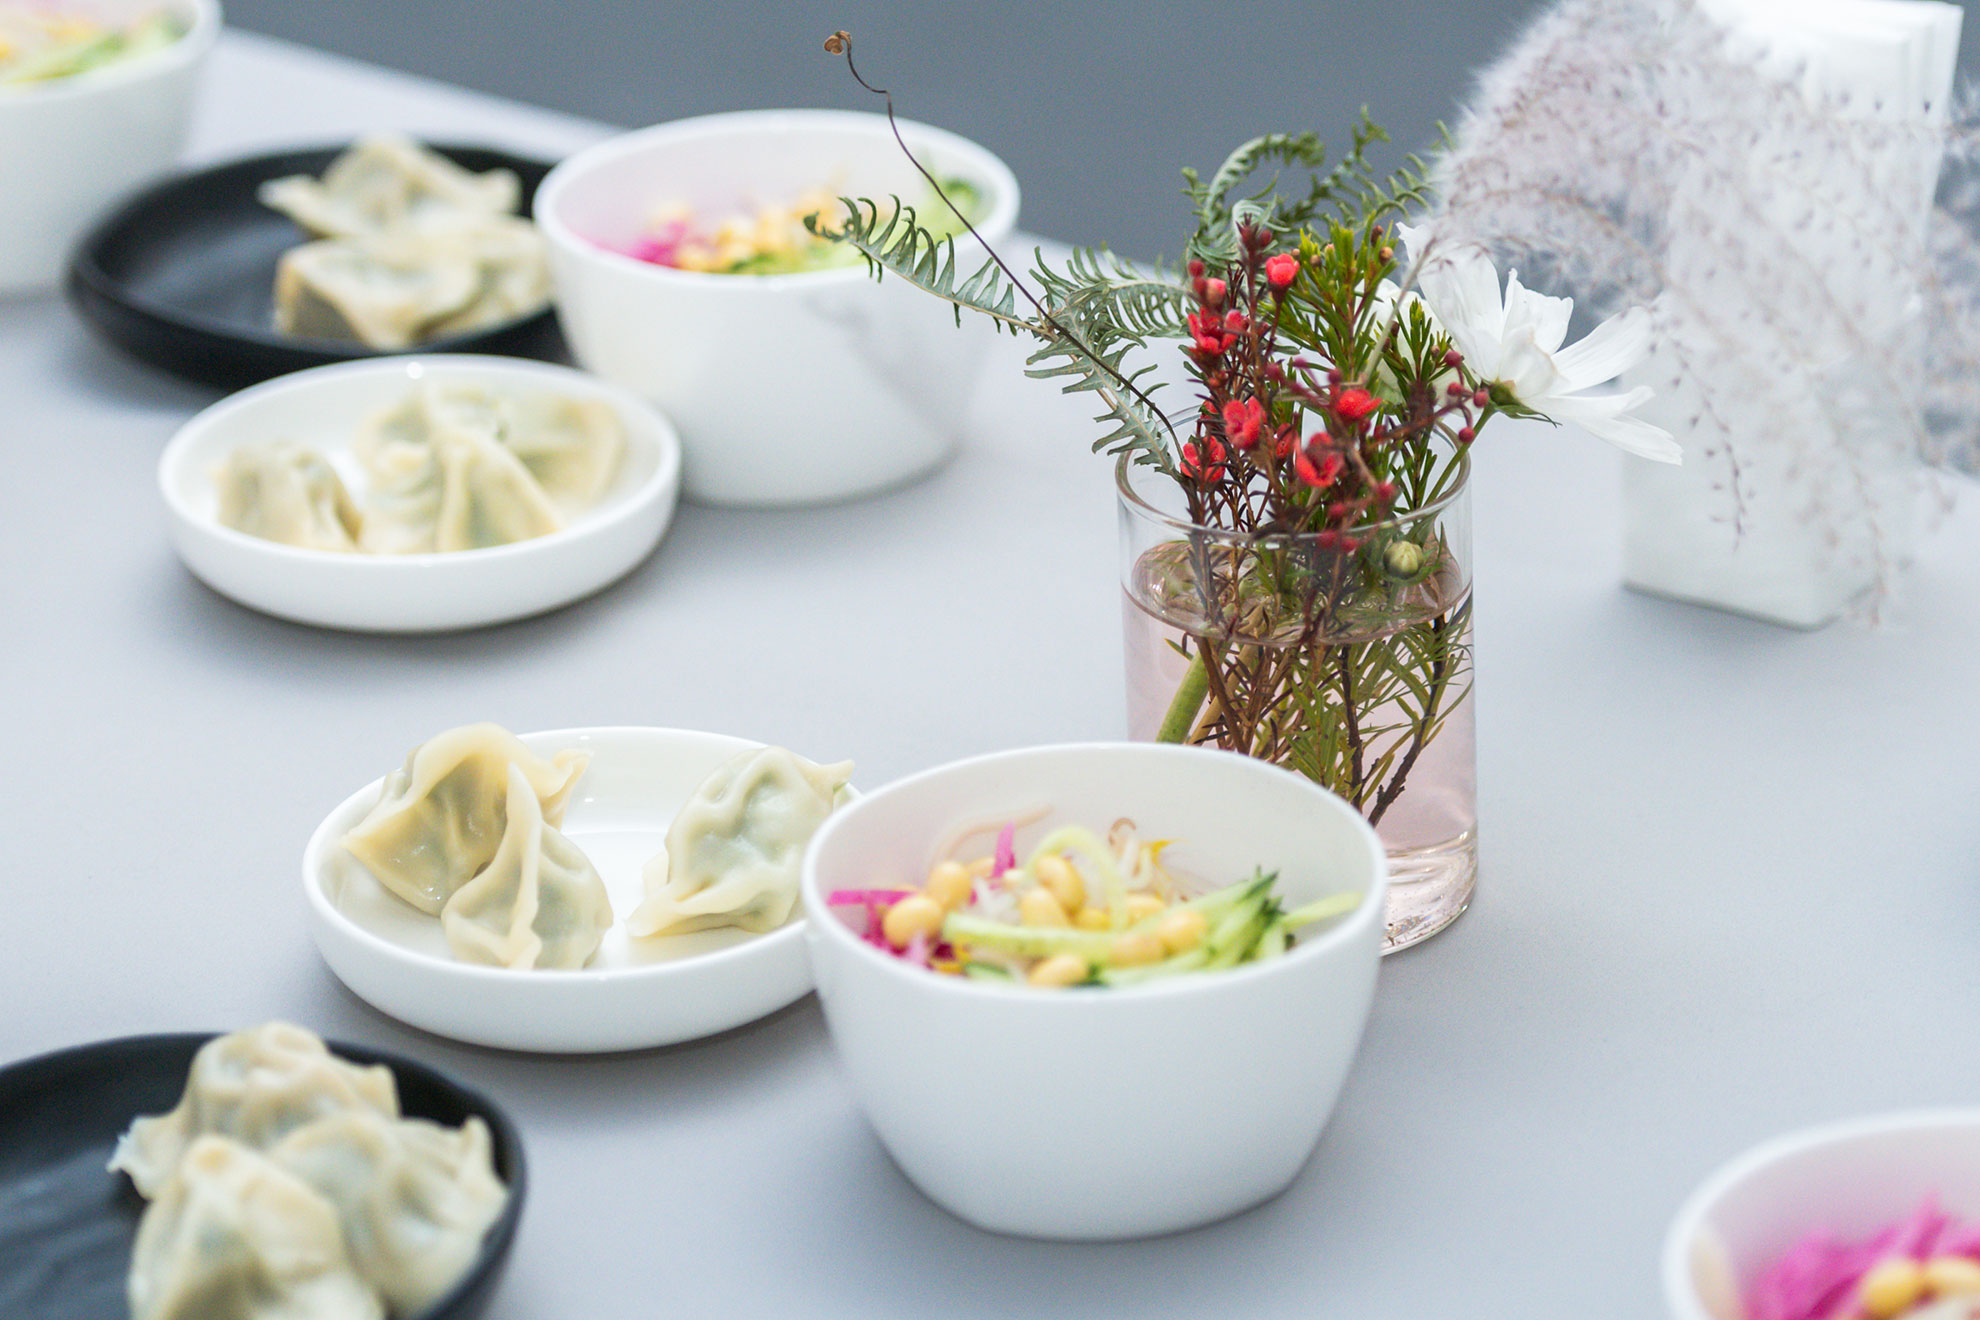 An arrangement of dumplings and other snacks